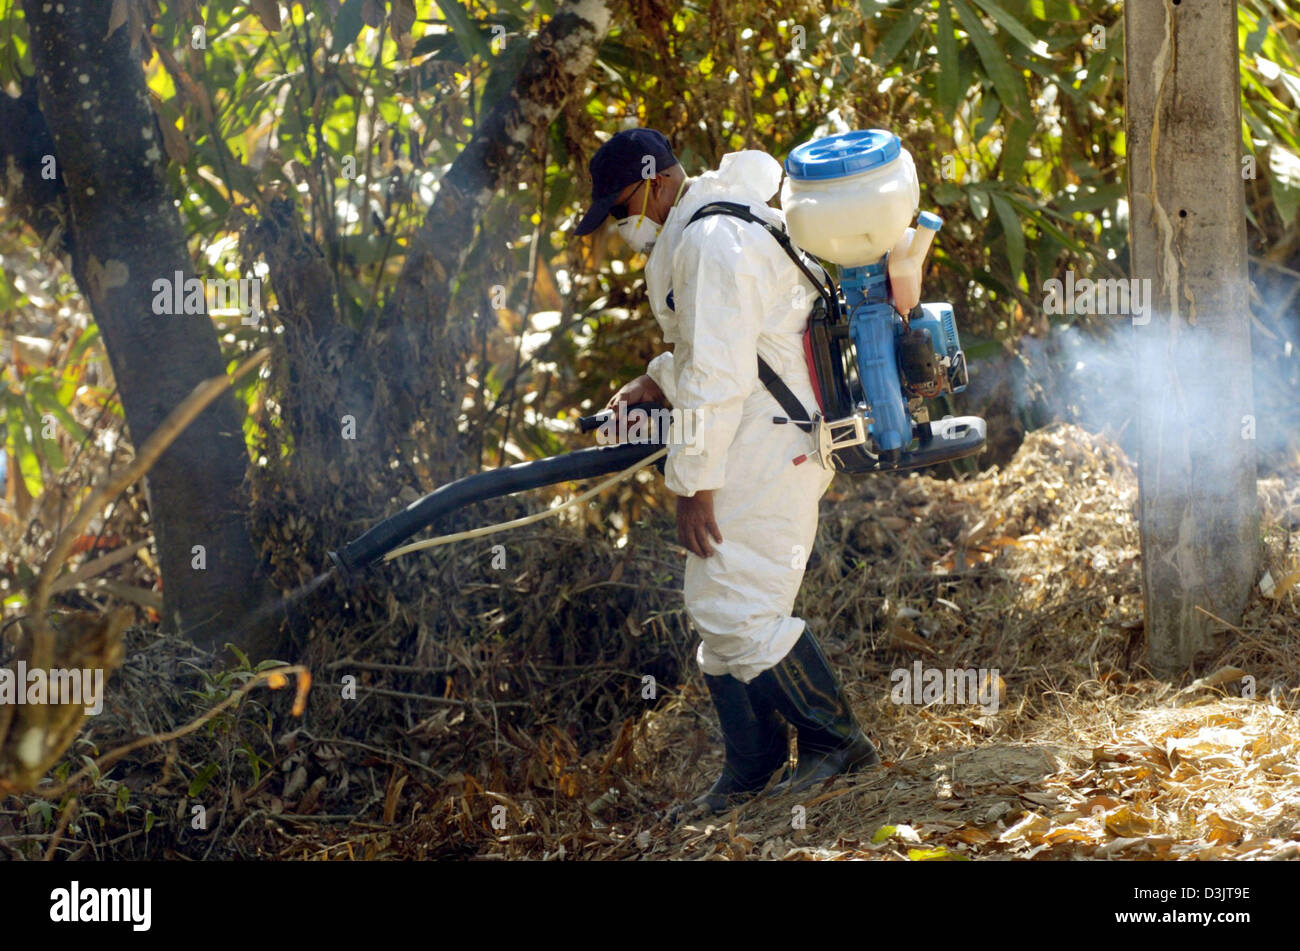 (dpa) - A worker sprays disinfectant into the scrub near Khao Lak, Thailand, 13 January 2005. This is supposed to - Stock Image